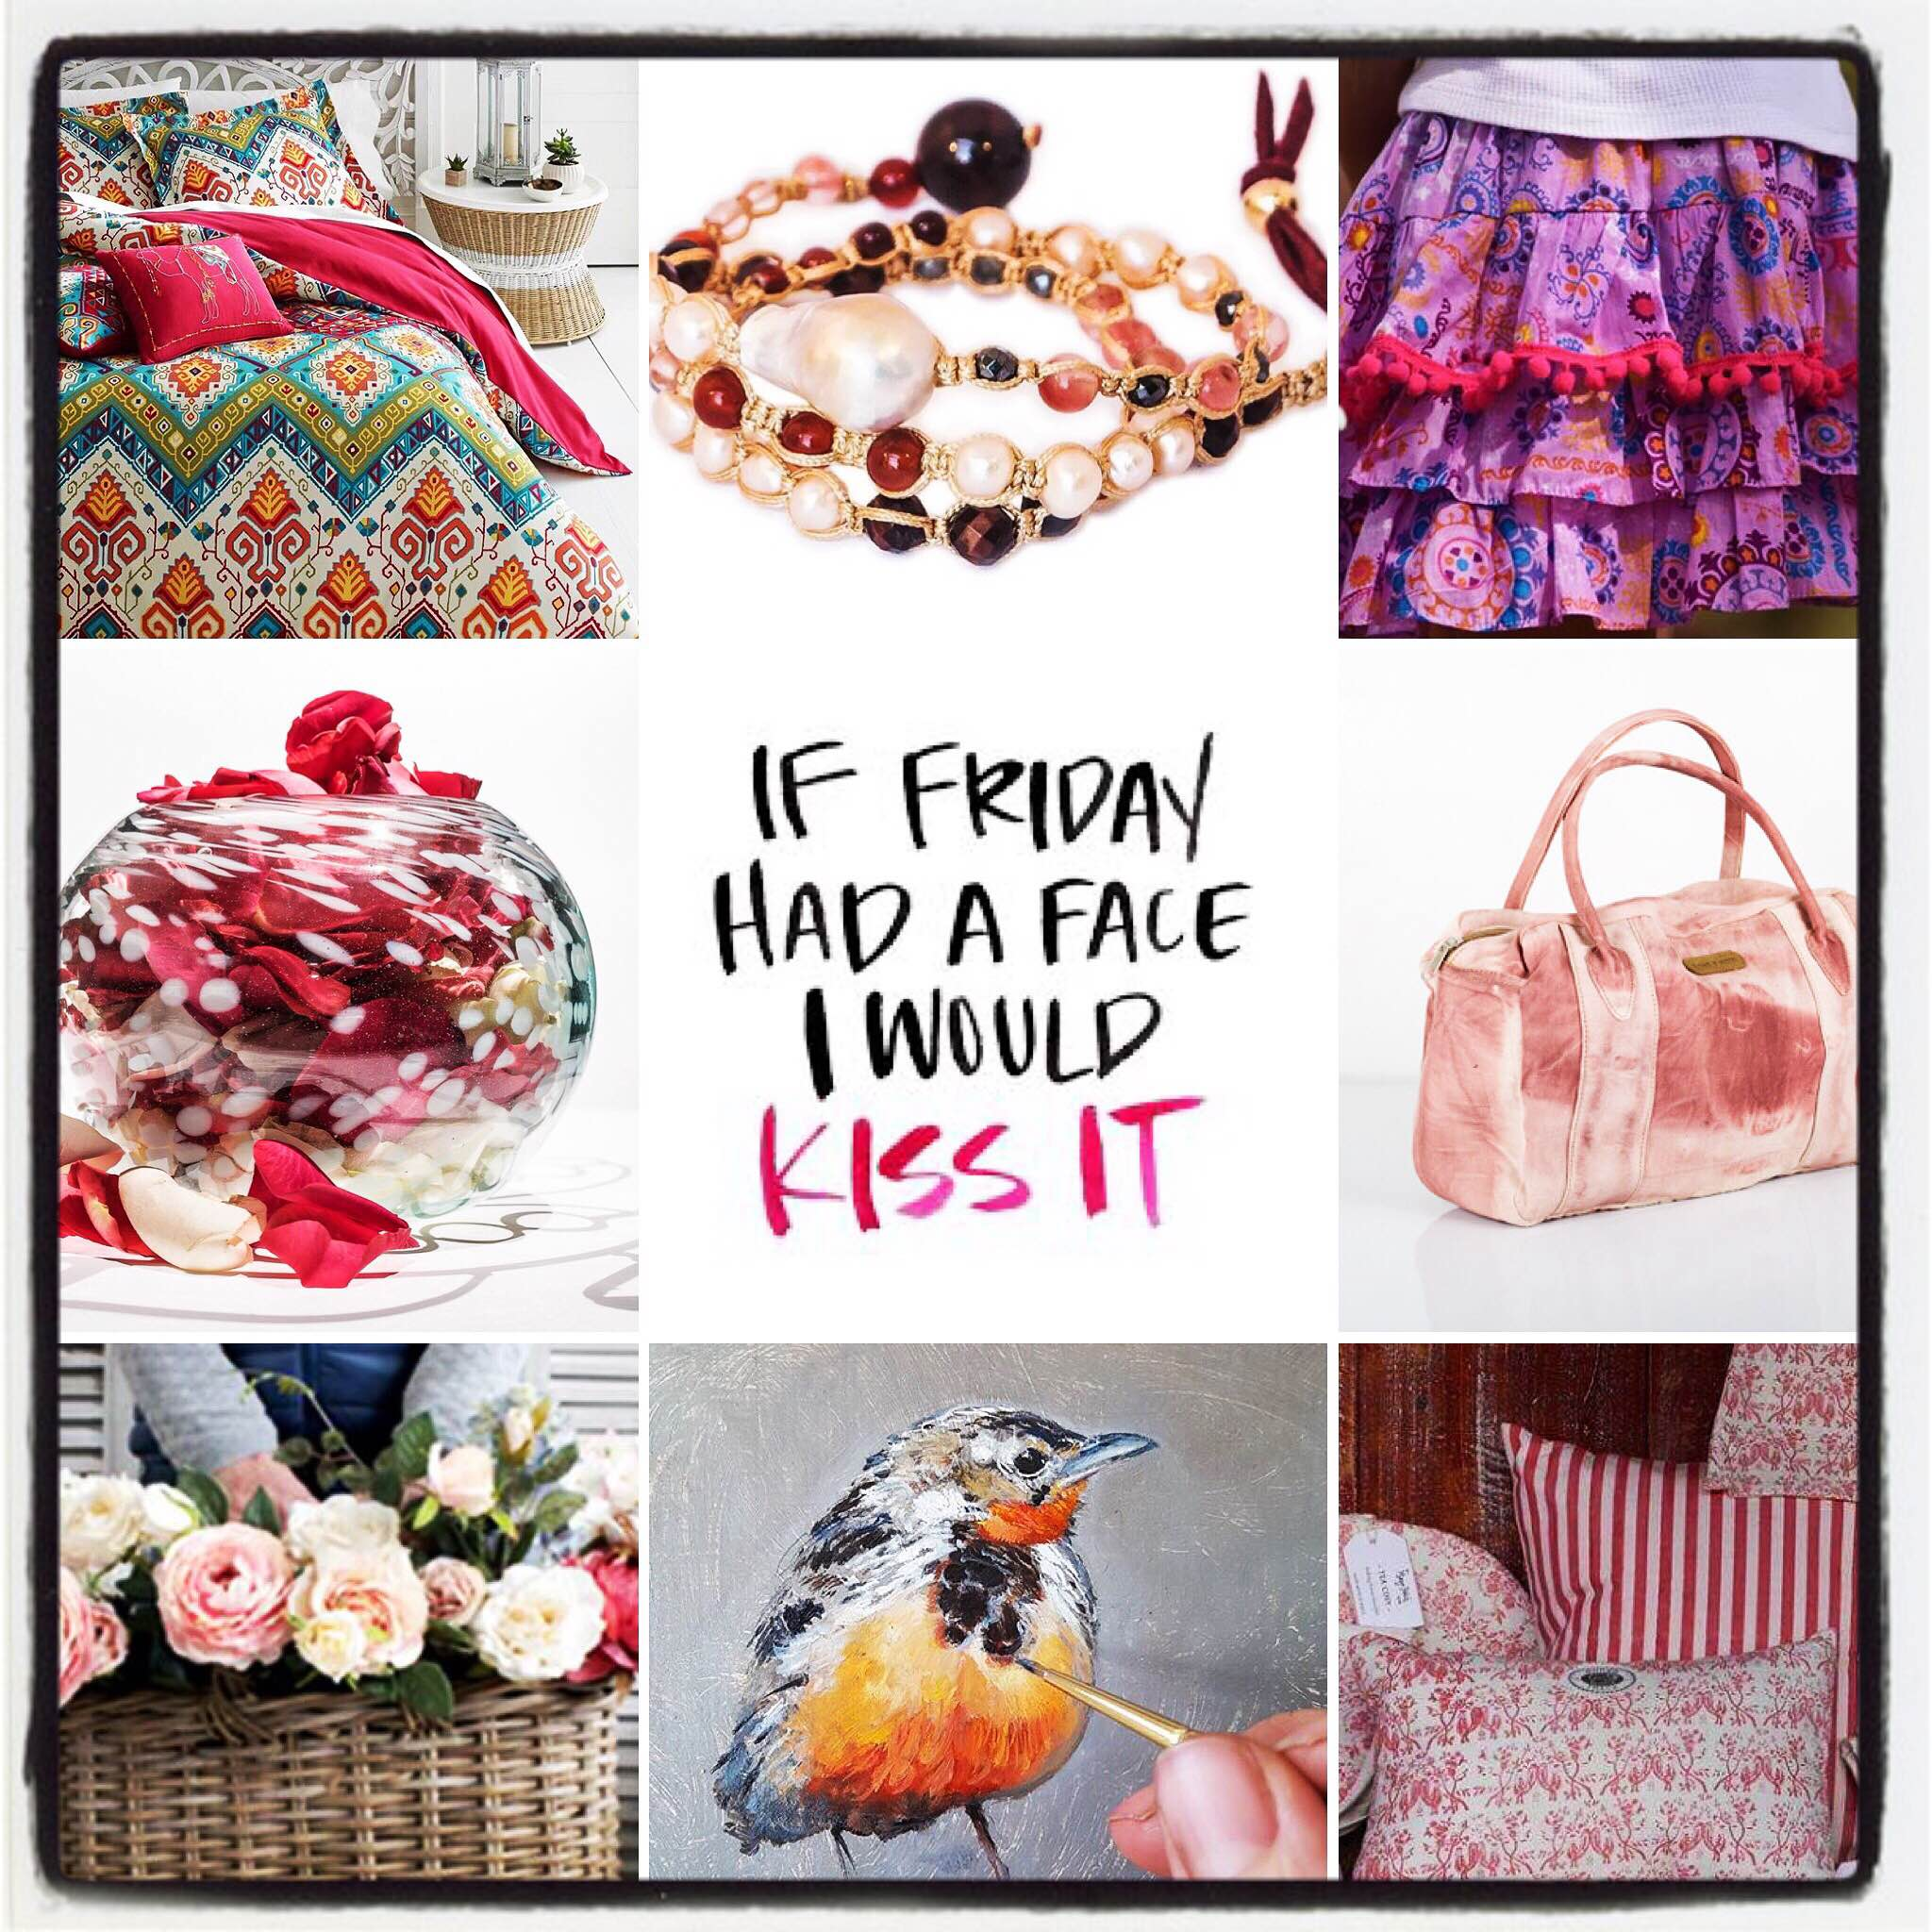 All things lovely and pink for our favorite day...Friday! Have a wonderful weekend. Go on a shopping spree at House of Treasures Emporium and discover hidden treasures... #houseoftreasures #hiddentreasures #allthingslovely #pinkispretty #thankgoditsfriday #fridayfeeling #shoppingspree #weekendfun #jewellery #linen #homedecor #homeaccessories #handbags #art #fashion #glassware